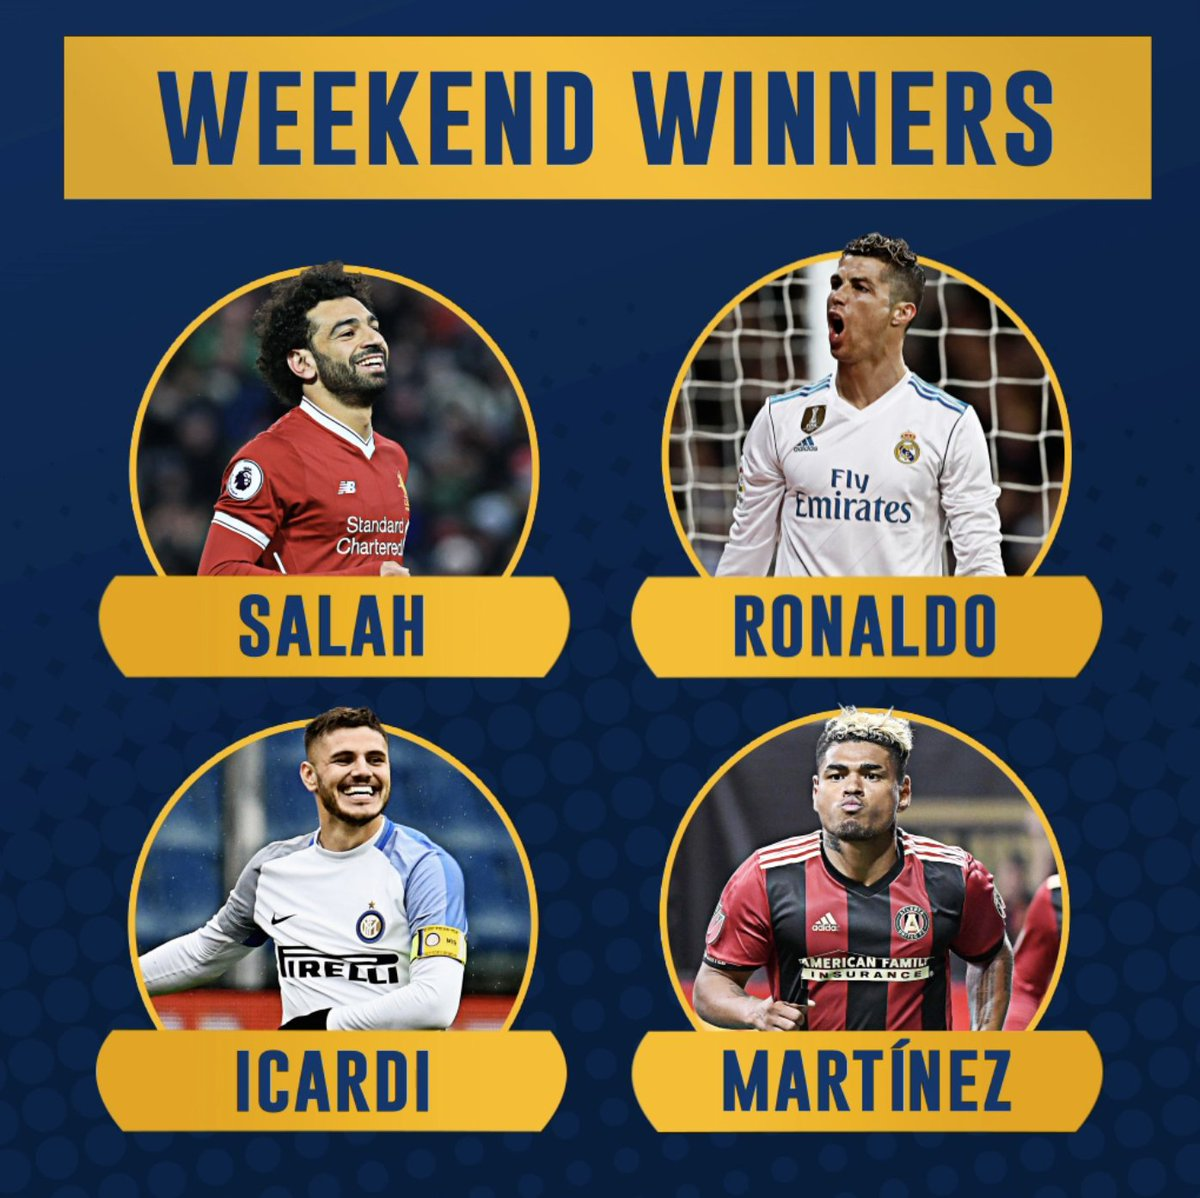 THREE different players had 4-goal games this weekend 😱 Which player was most impressive?